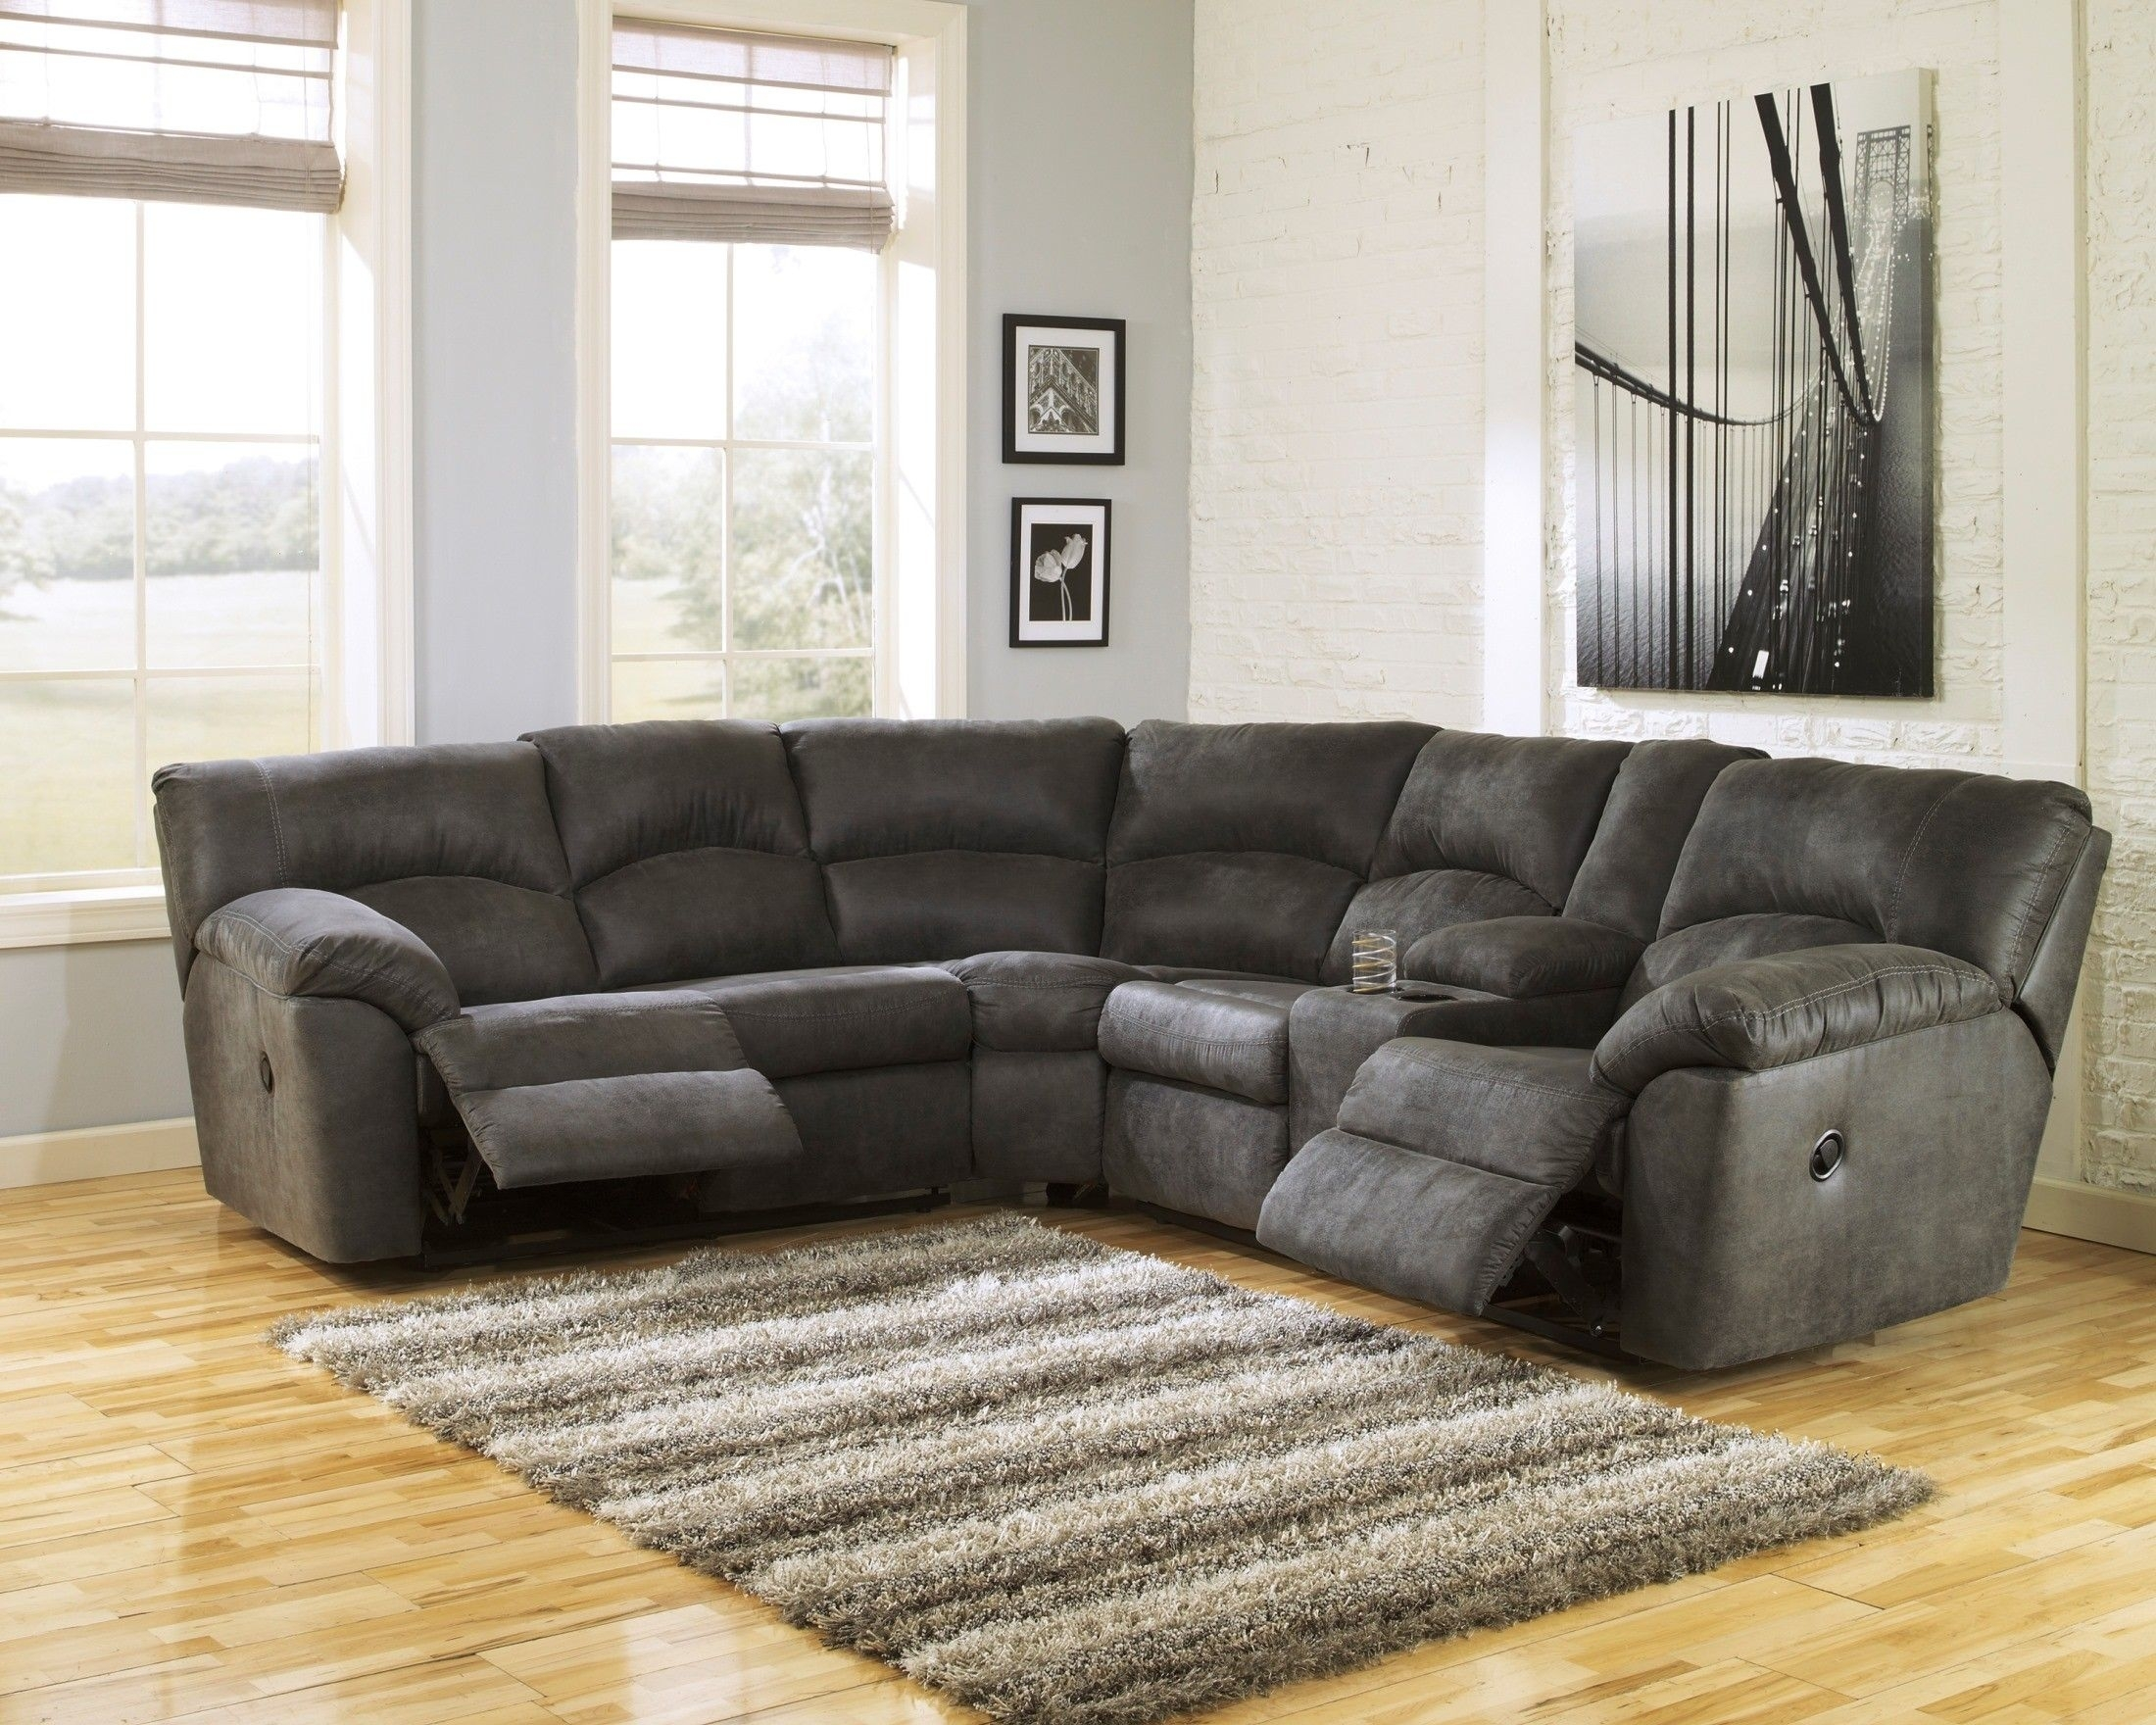 Tambo Pewter, Asl 27801 48 49, Ashley Furniture | My Livingroom For Norfolk Chocolate 6 Piece Sectionals With Laf Chaise (Image 24 of 25)